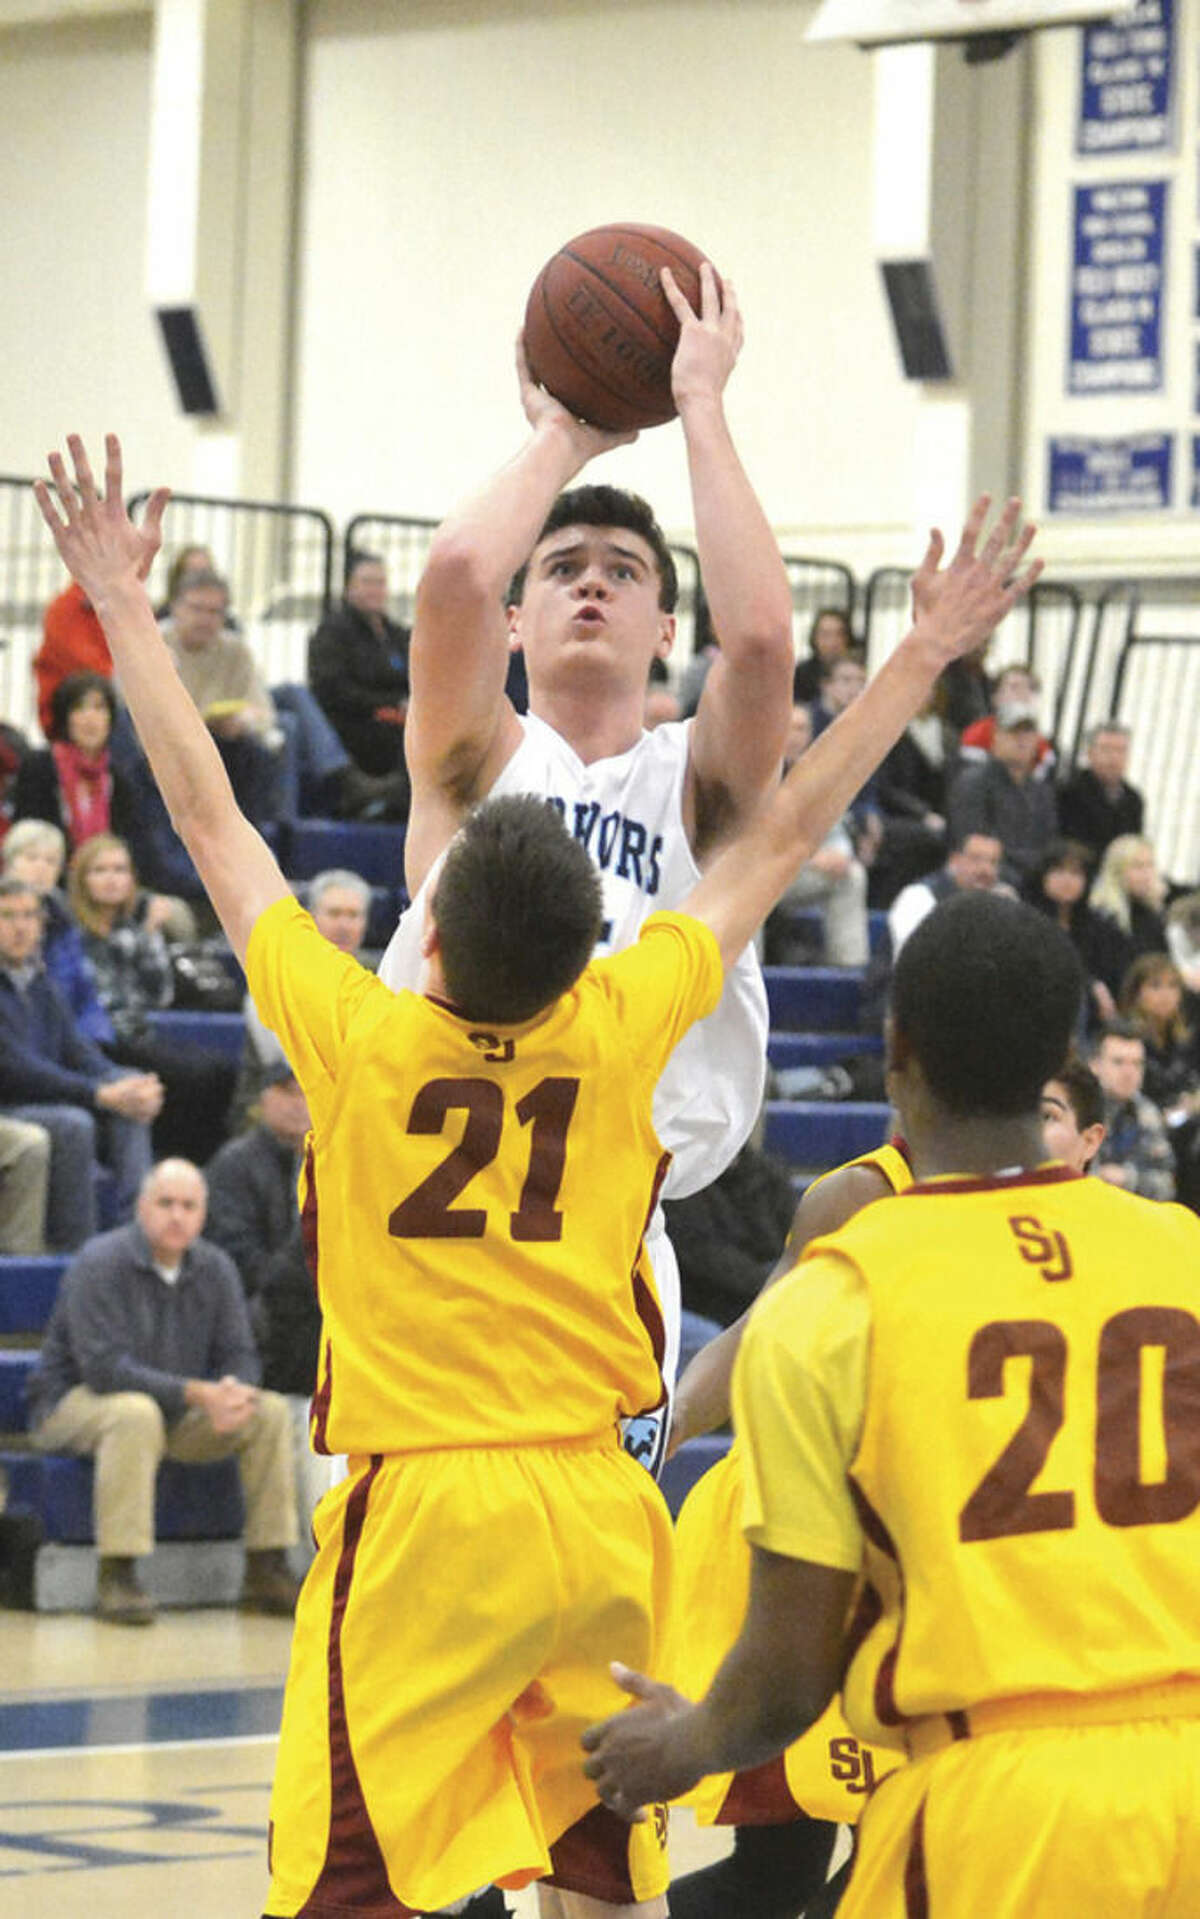 Wilton's James Maloney, top, puts up a shot during a game against St. Joseph earlier this season.